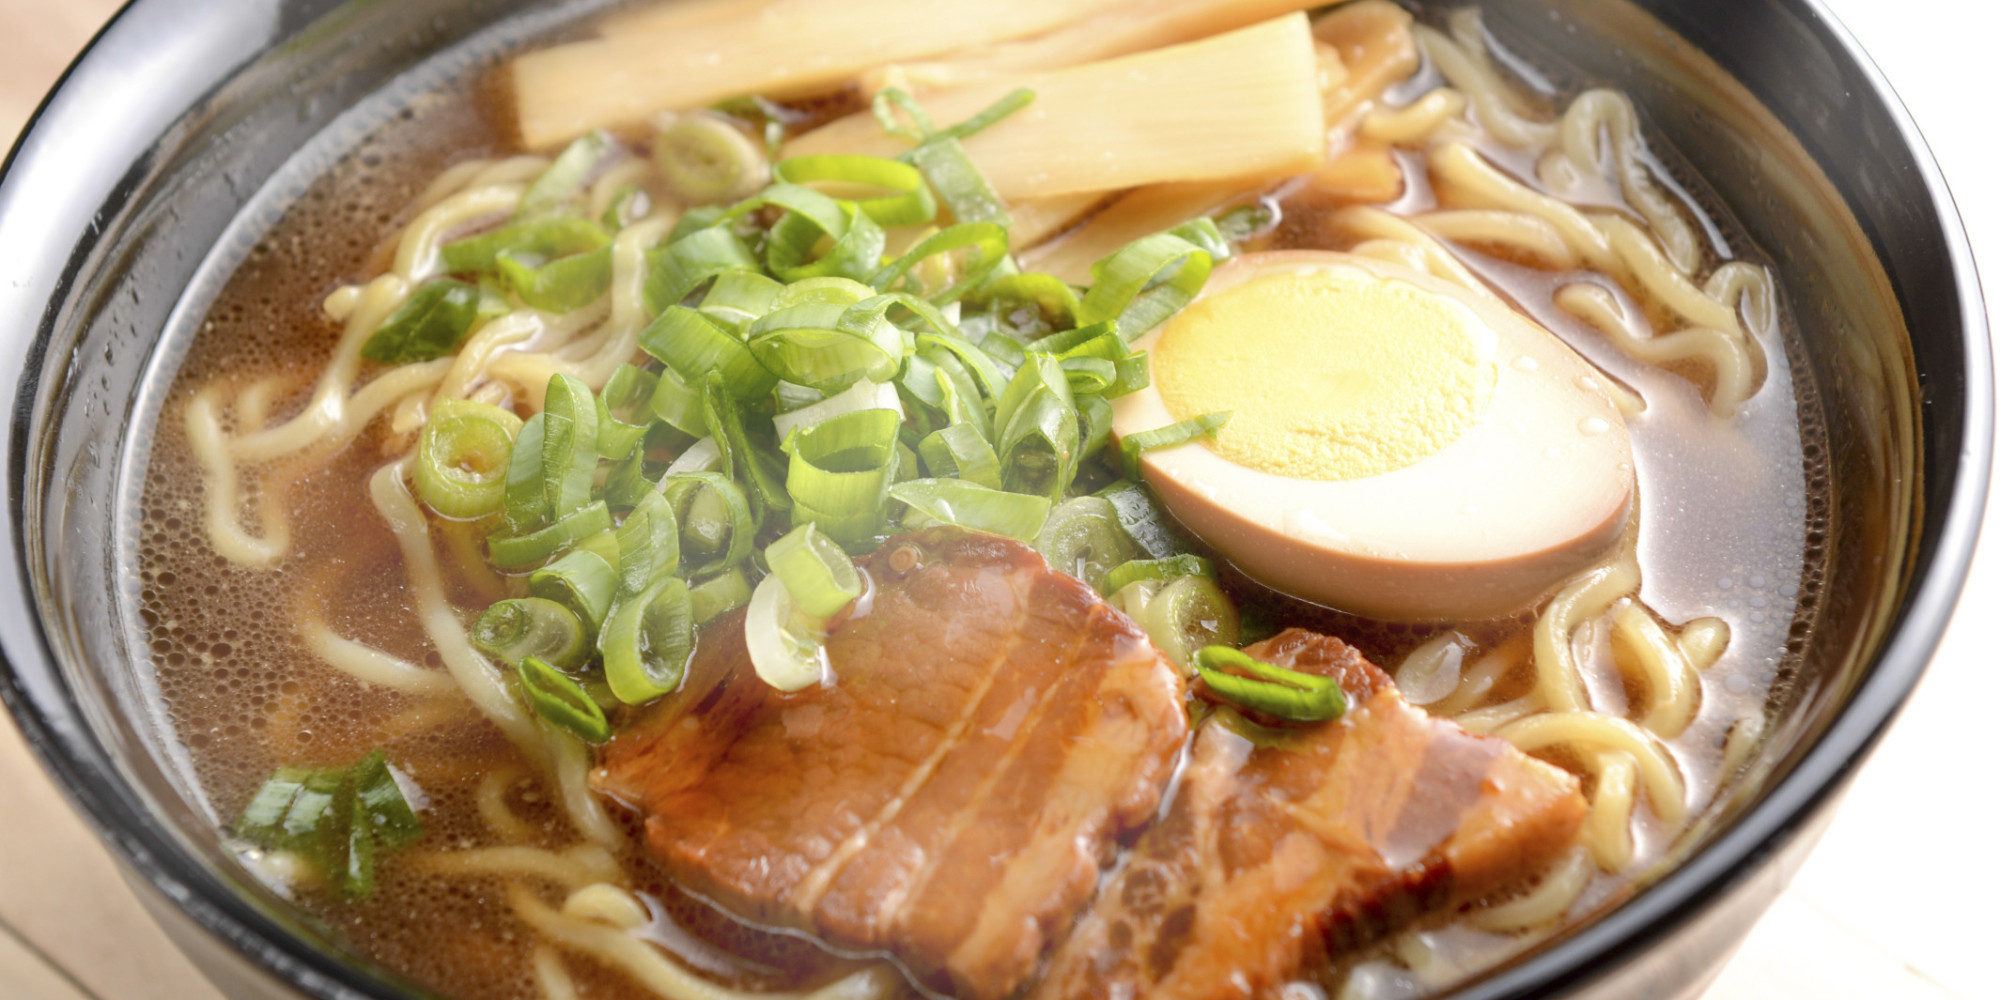 Ramen Noodles Unhealthy  So Just How Bad Is Ramen For You Anyway